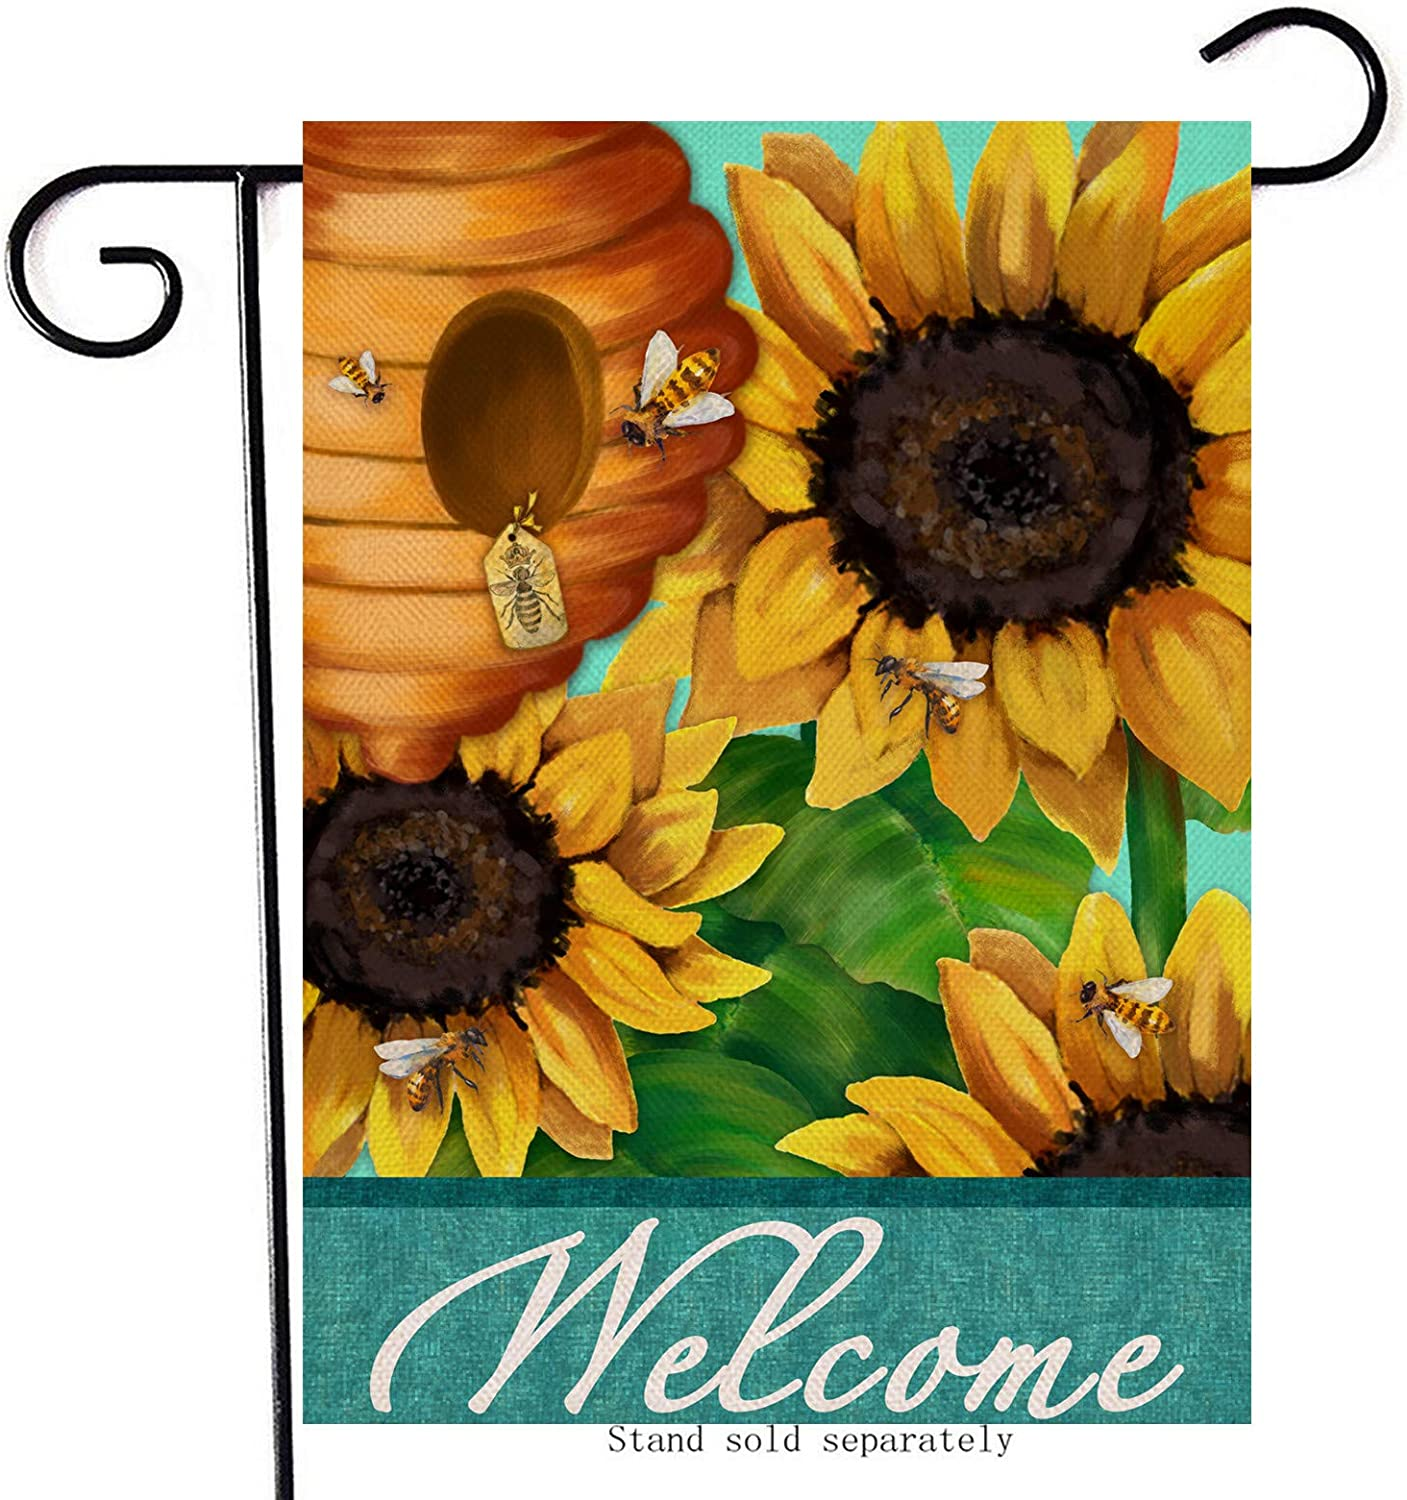 Artofy Welcome Summer Decorative Garden Flag, House Yard Watercolor Sunflower Honeycomb Decor Sign Bee Outdoor Small Burlap Flag Double Sided, Home Outside Spring Seasonal Farmhouse Decorations12x18